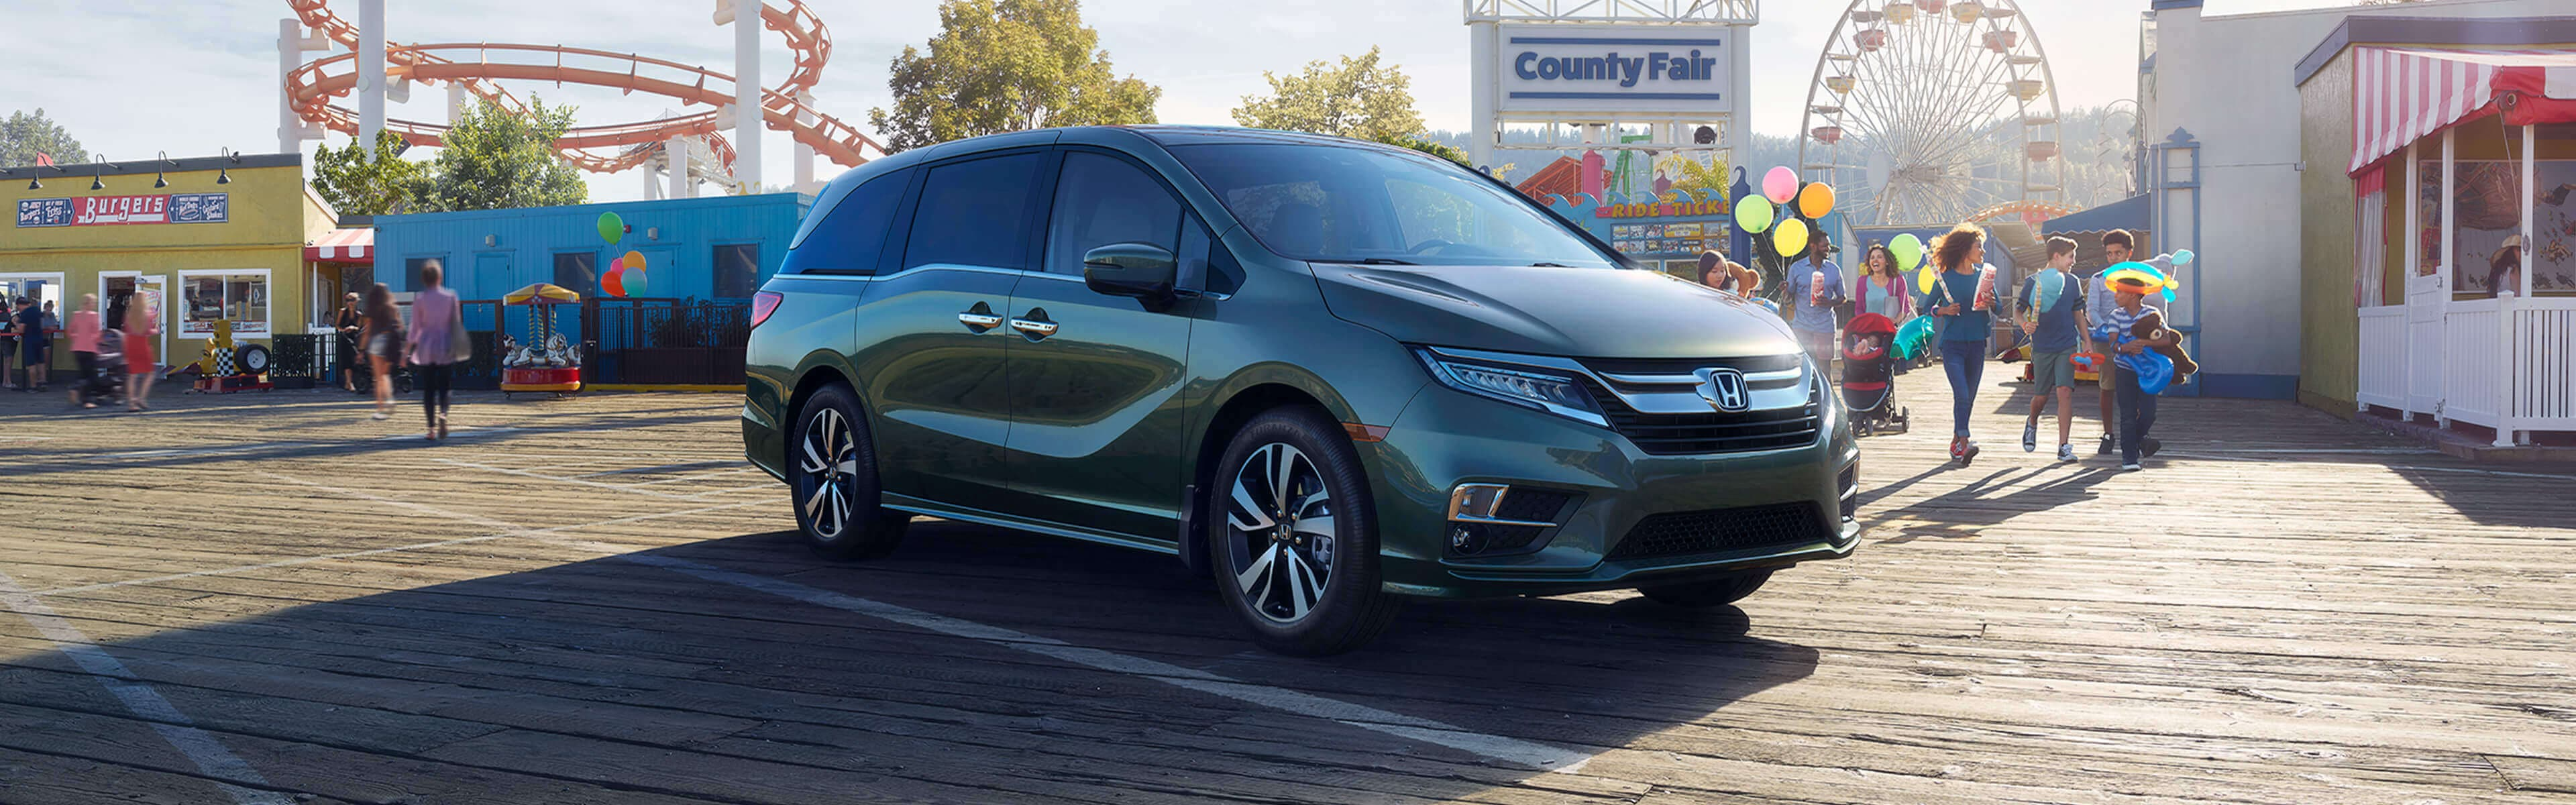 2019 Honda Odyssey Minivans In New Glasgow, NS Near Antigonish